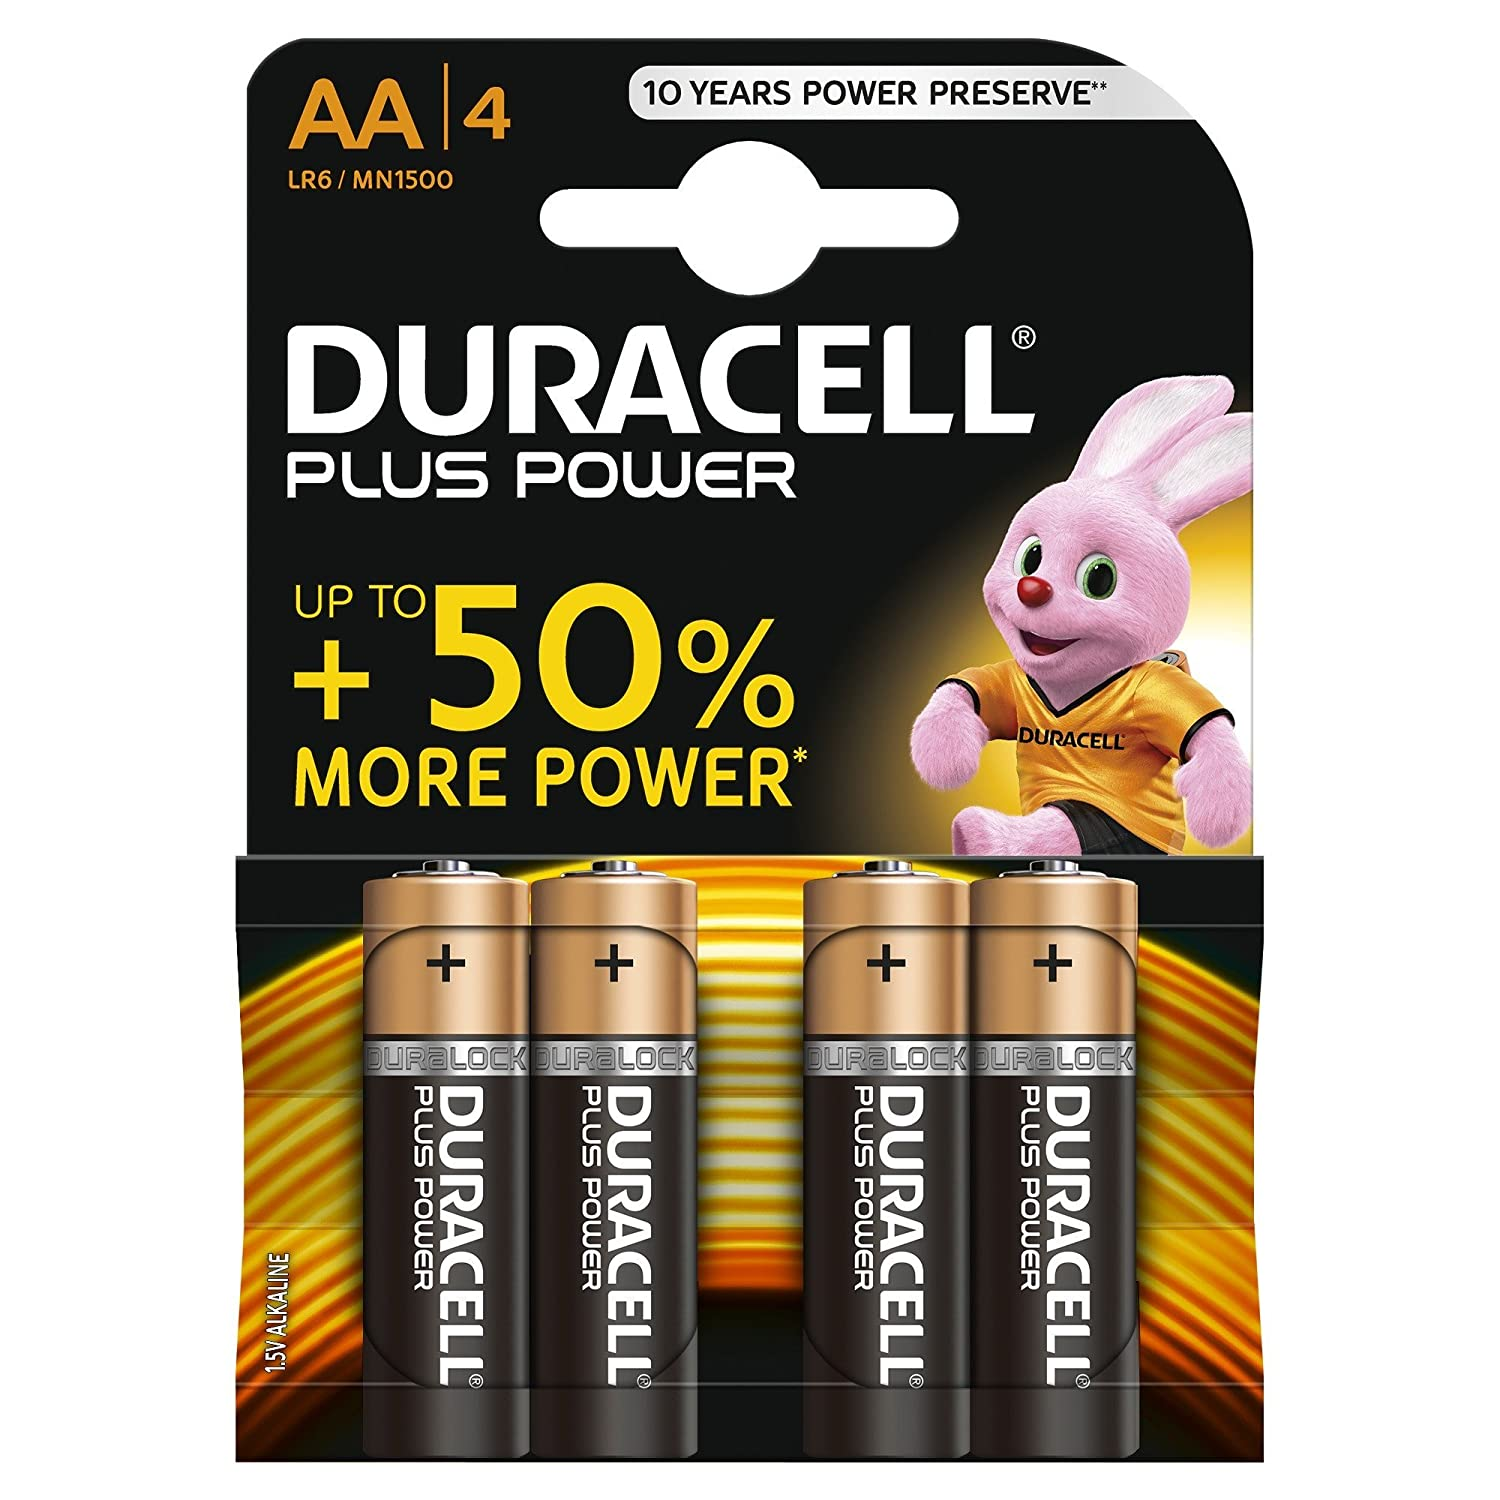 Pack of 4 Duracell Plus Power AA Alkaline Batteries 1.5v LR6 MN1500 STILO MIGNON